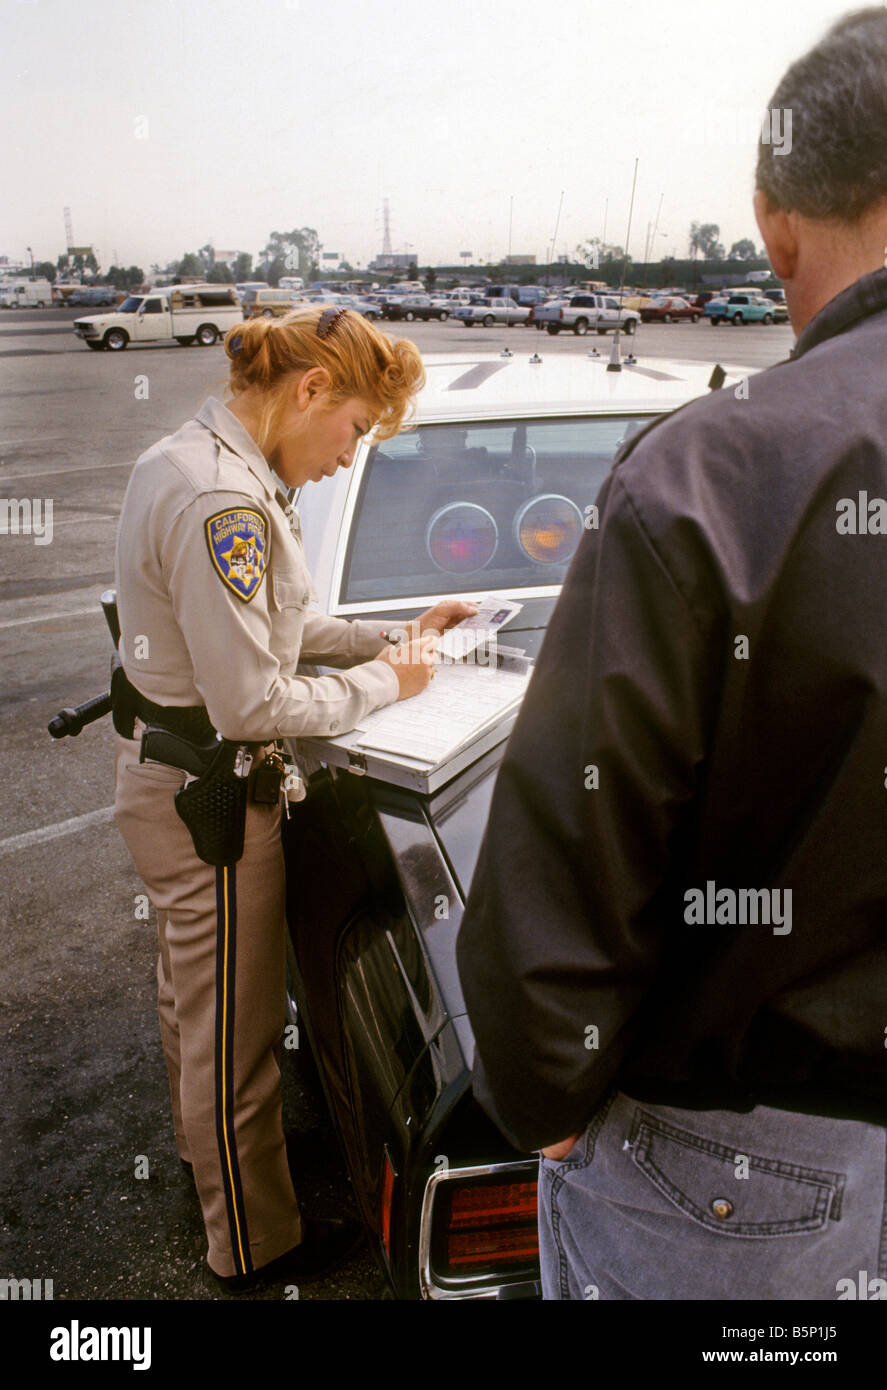 semi trailer deutsch single phase 4 pole motor wiring diagram female california highway patrol officer writes citation to driver stock photo: 20767885 - alamy